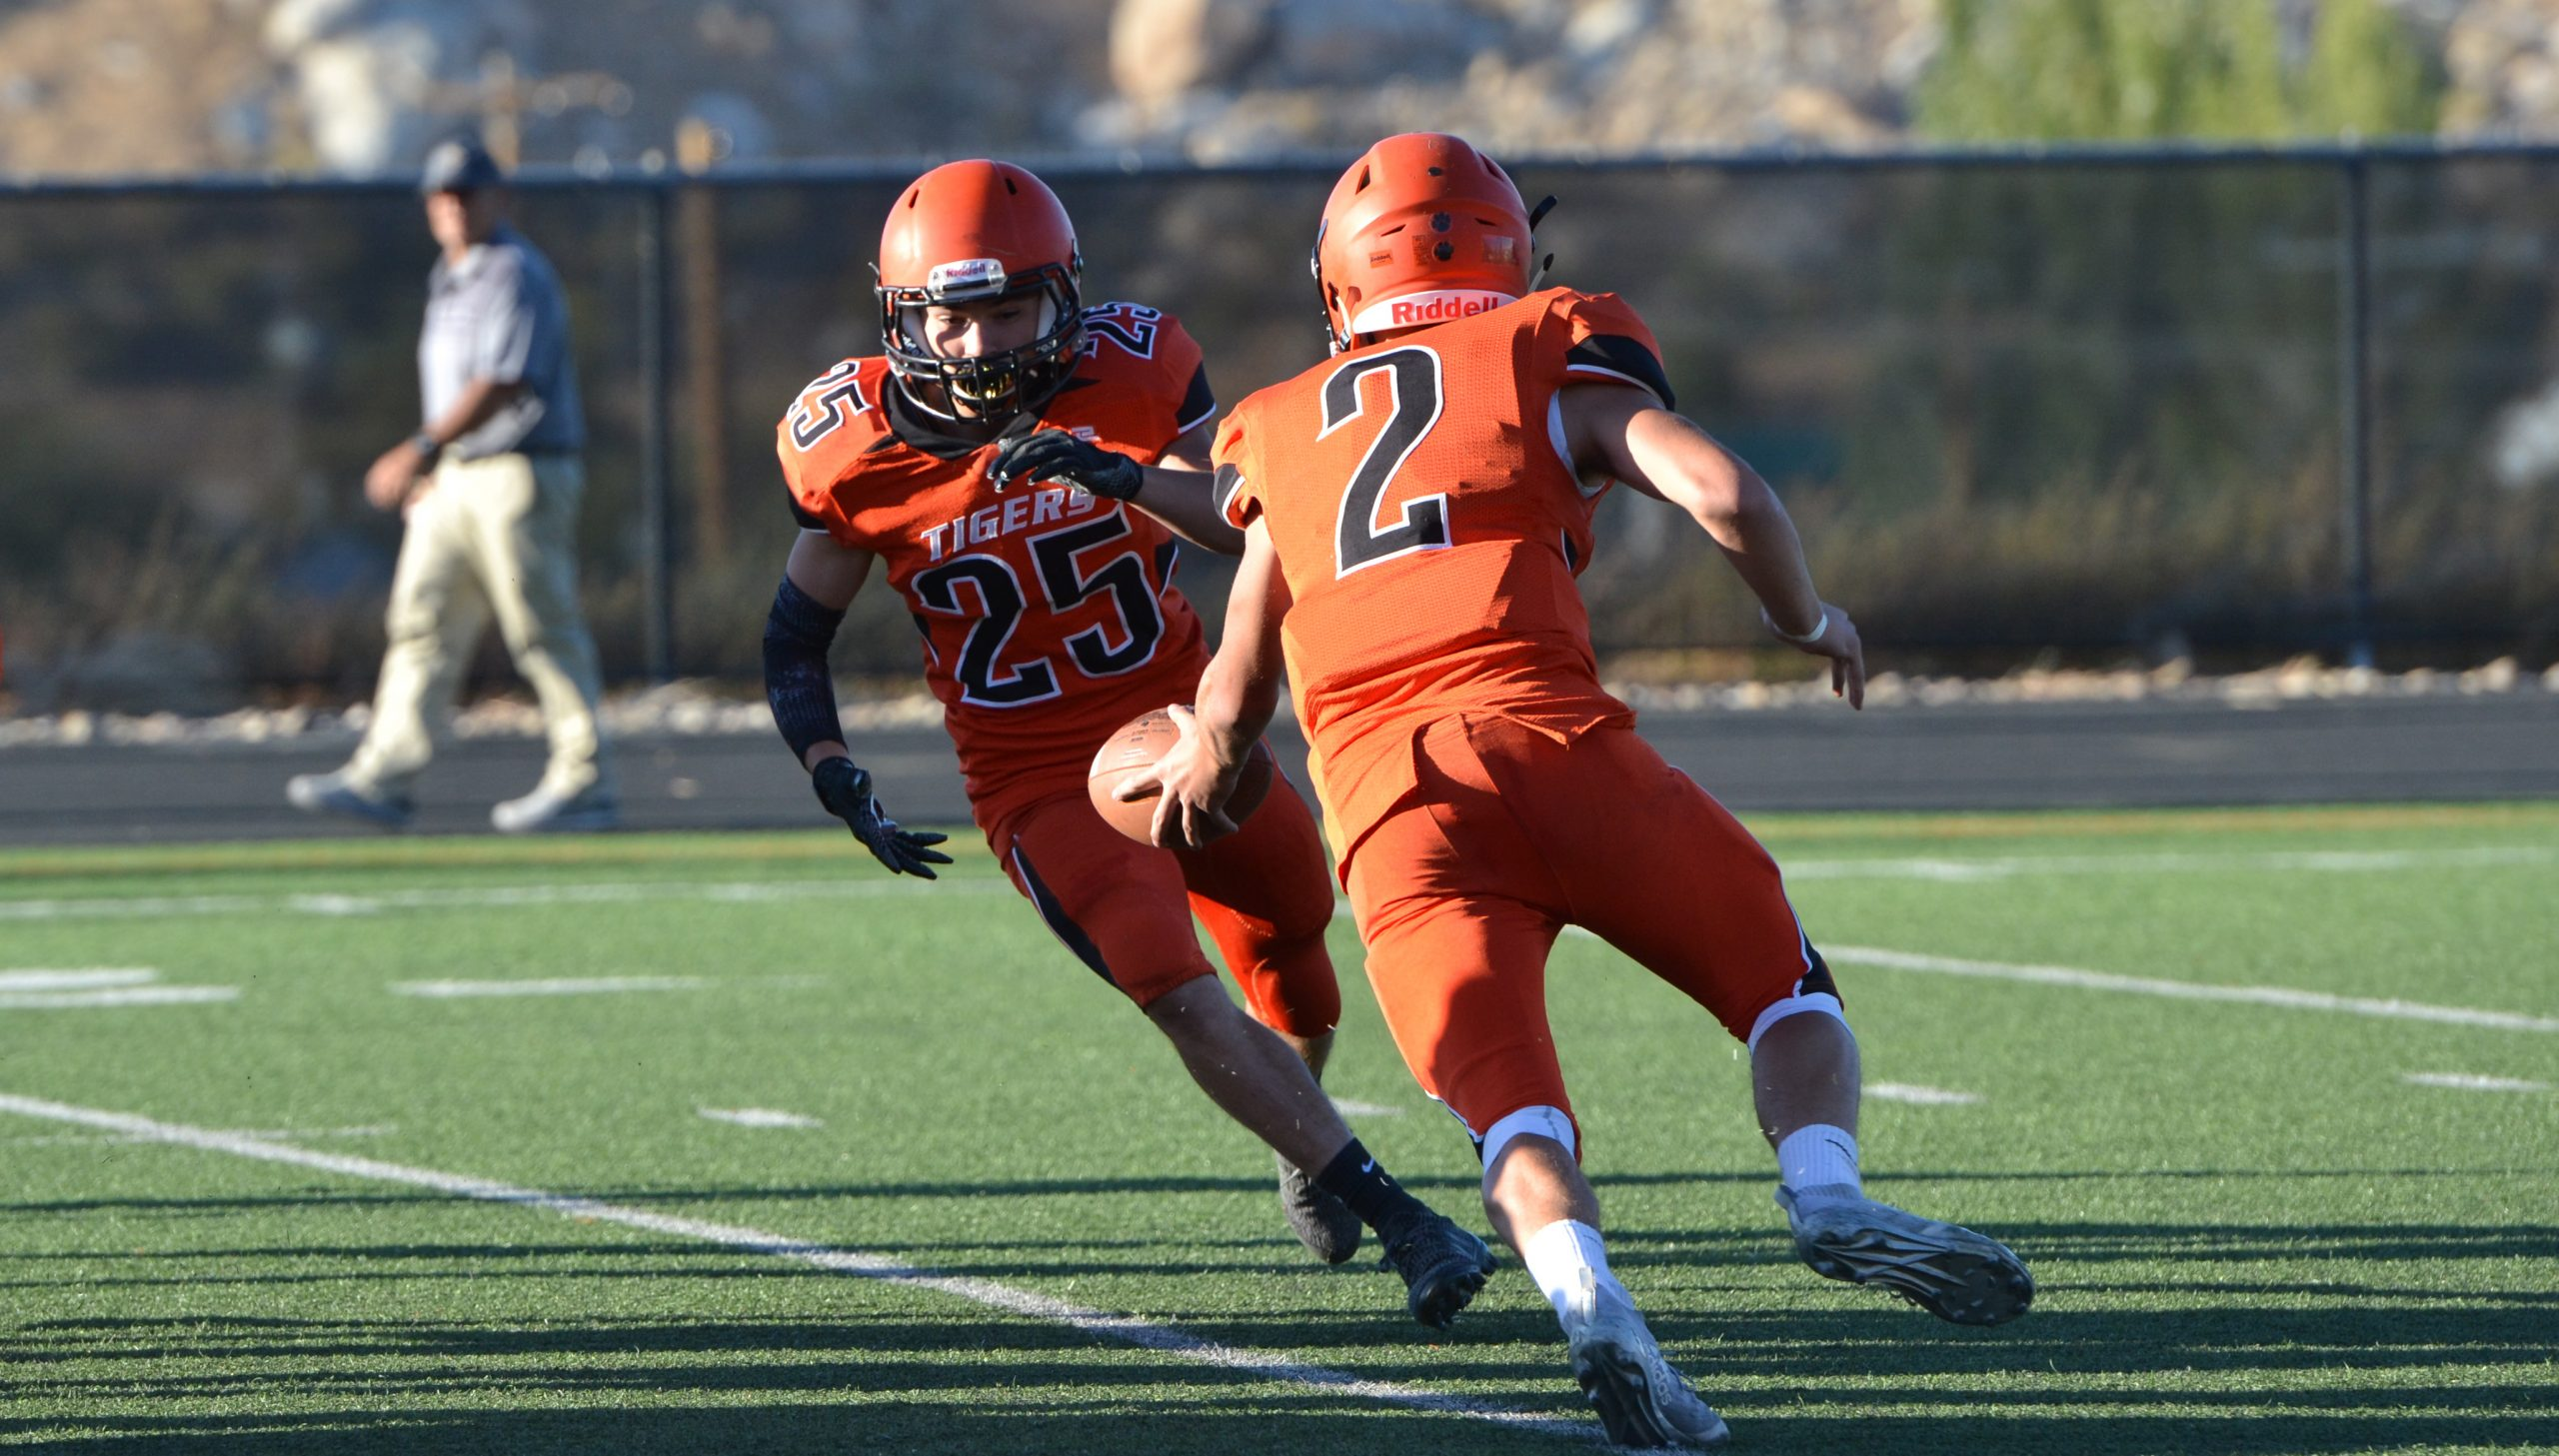 Tigers Come Up Short Against Thunderbirds in 24-16 Loss